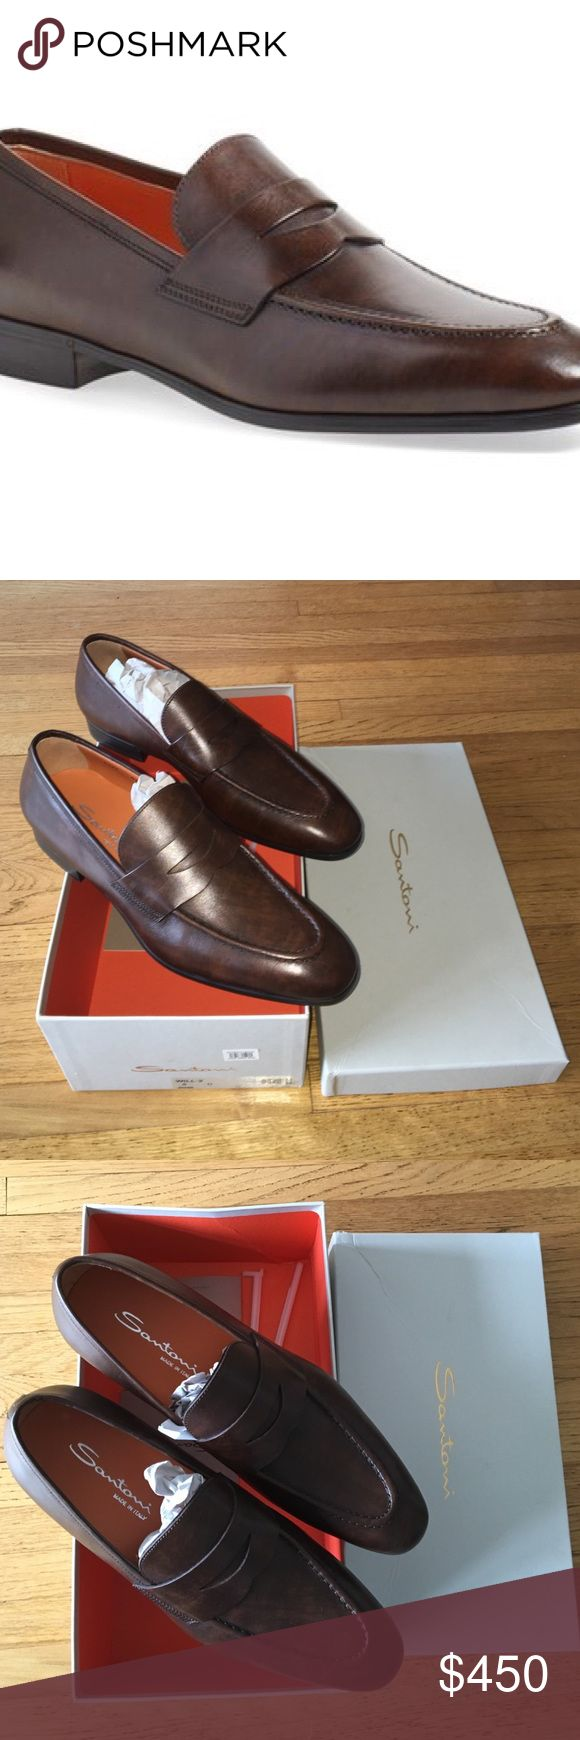 Santoni 'Will' Loafers Brand new, never worn - original certificate of uniqueness and maintenance manual in box. Santoni Shoes Loafers & Slip-Ons